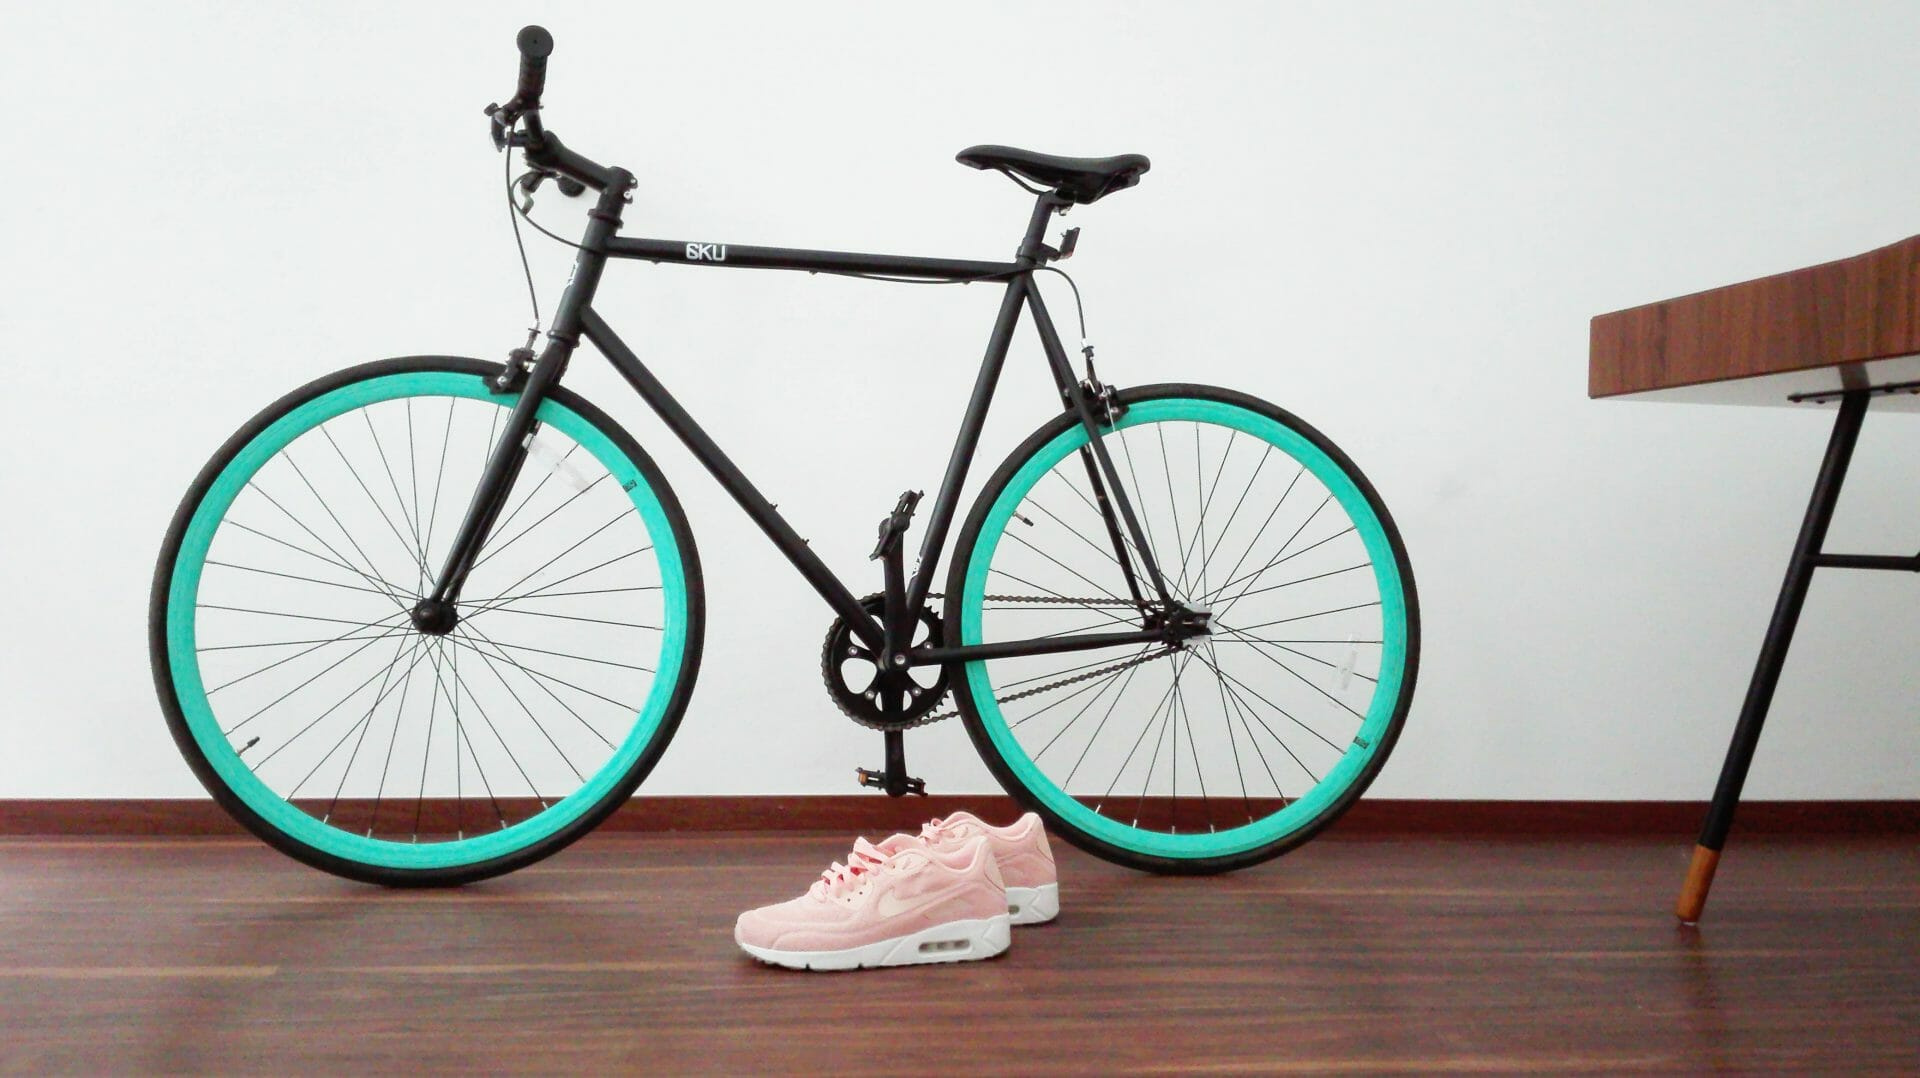 Picture of bike and pink nikes for Real Estate News for Investors Podcast Episode #725